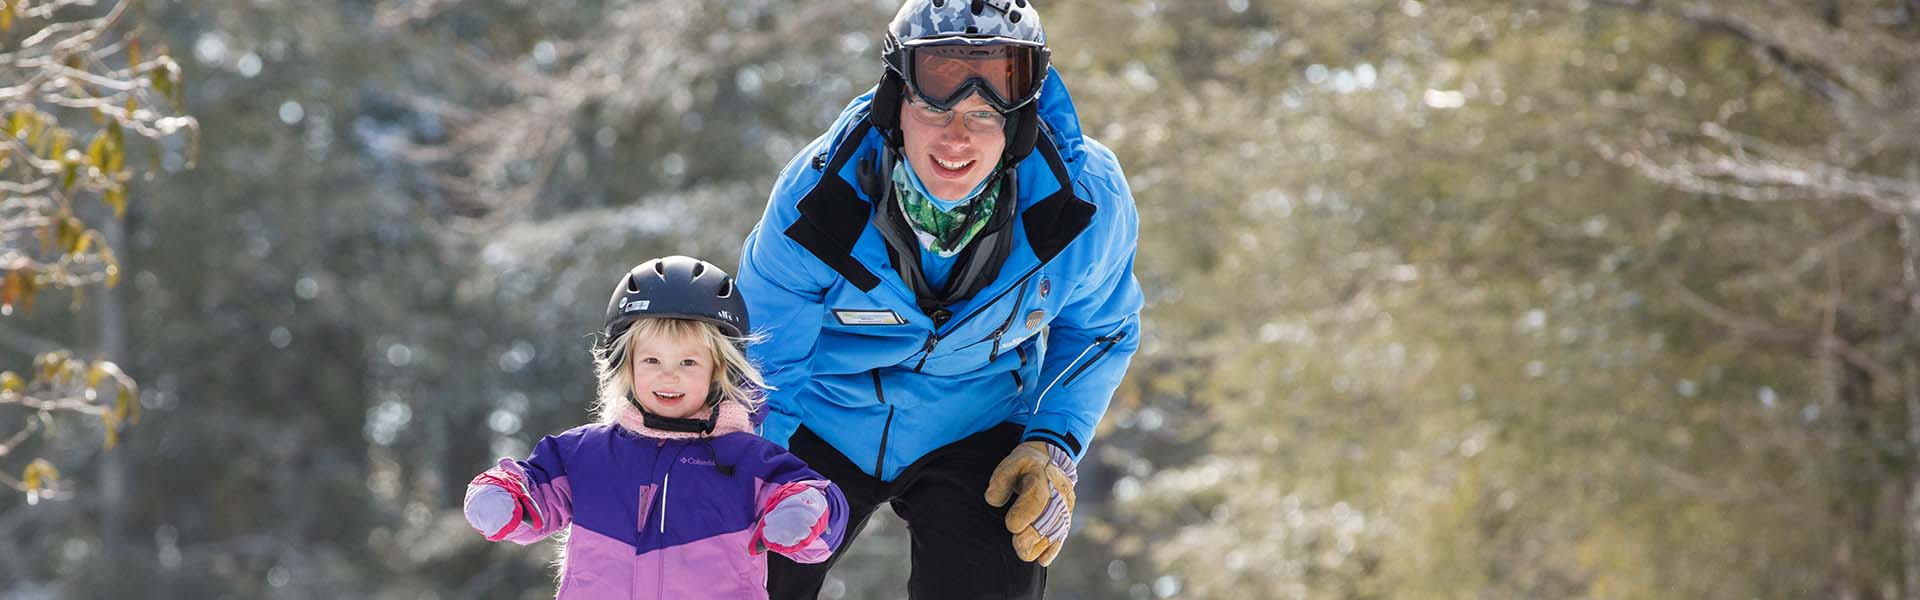 Ski instructor with puffin student on trail